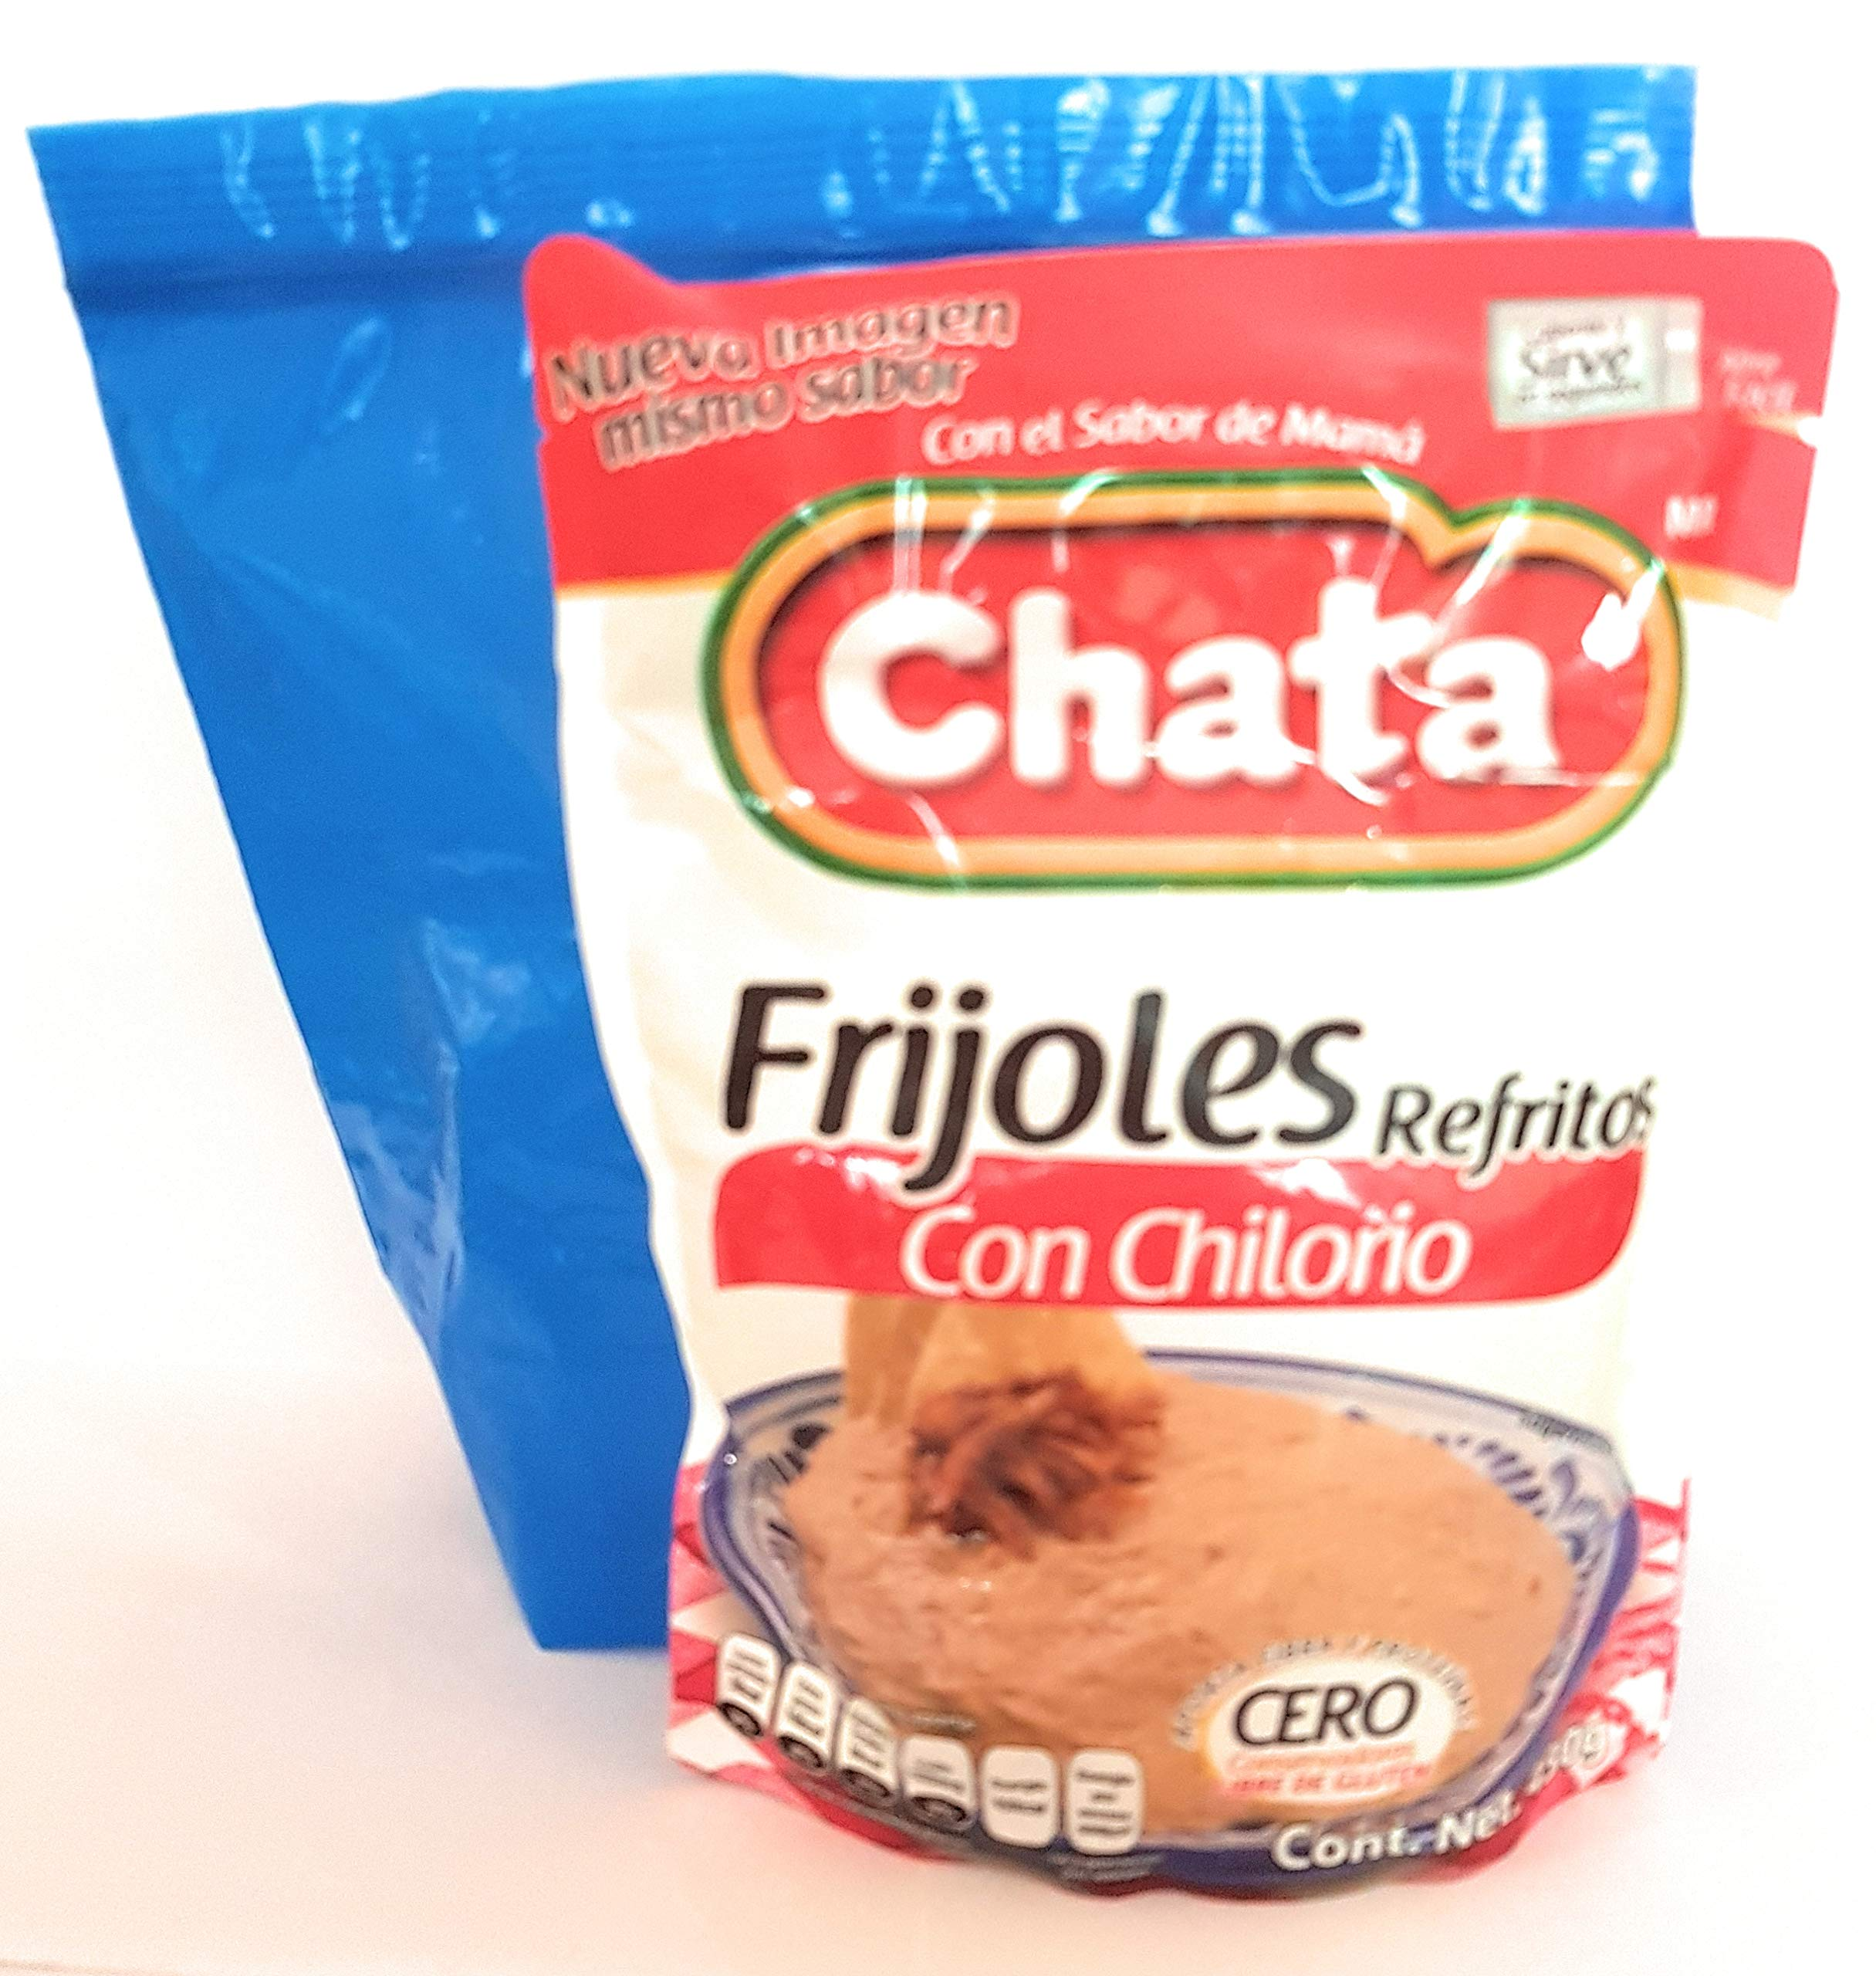 Chata Frijoles Refritos con Chilorio (Pack of 2) and Tesadorz Resealable Bags